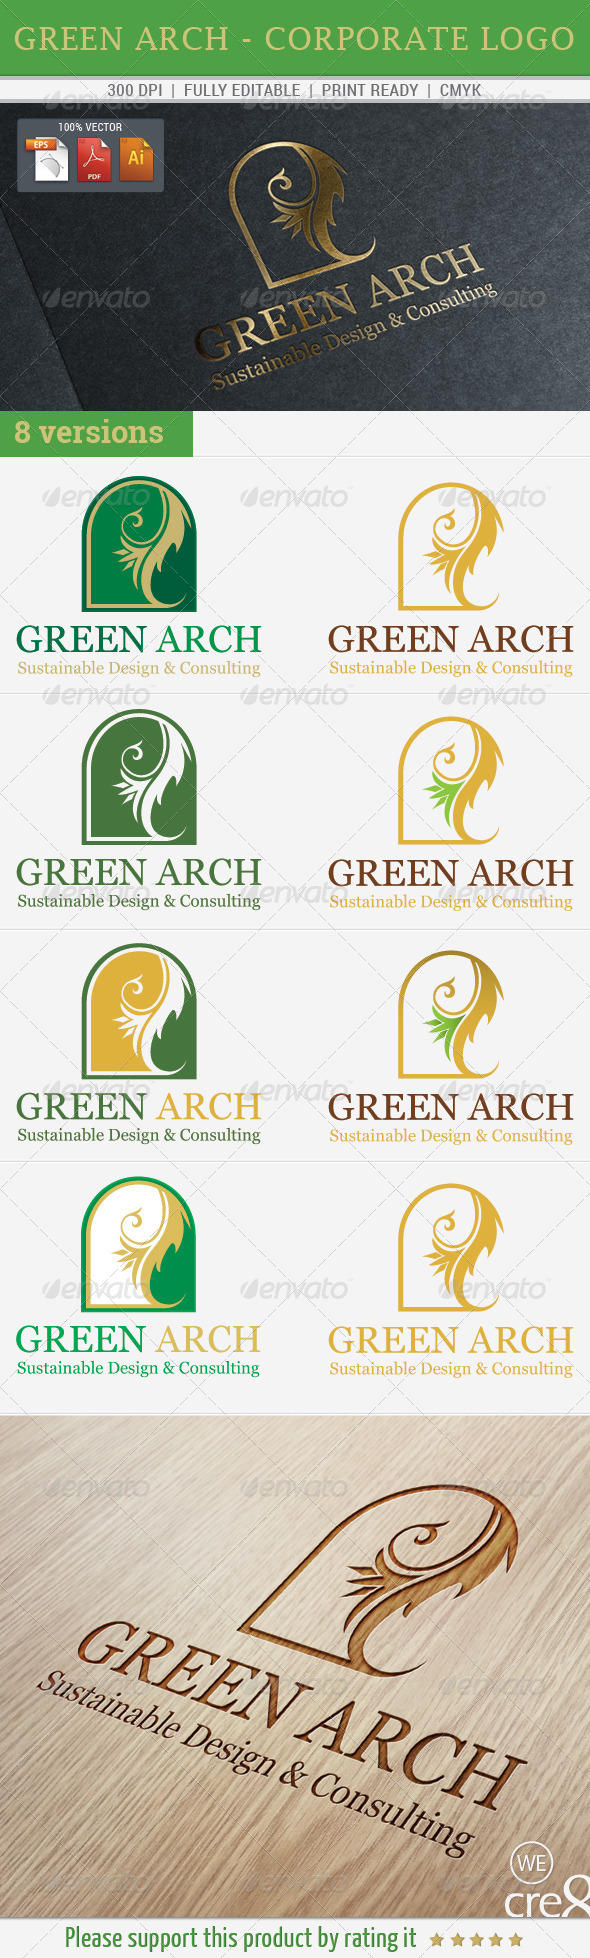 Green Arch - Corporate Logo - Buildings Logo Templates